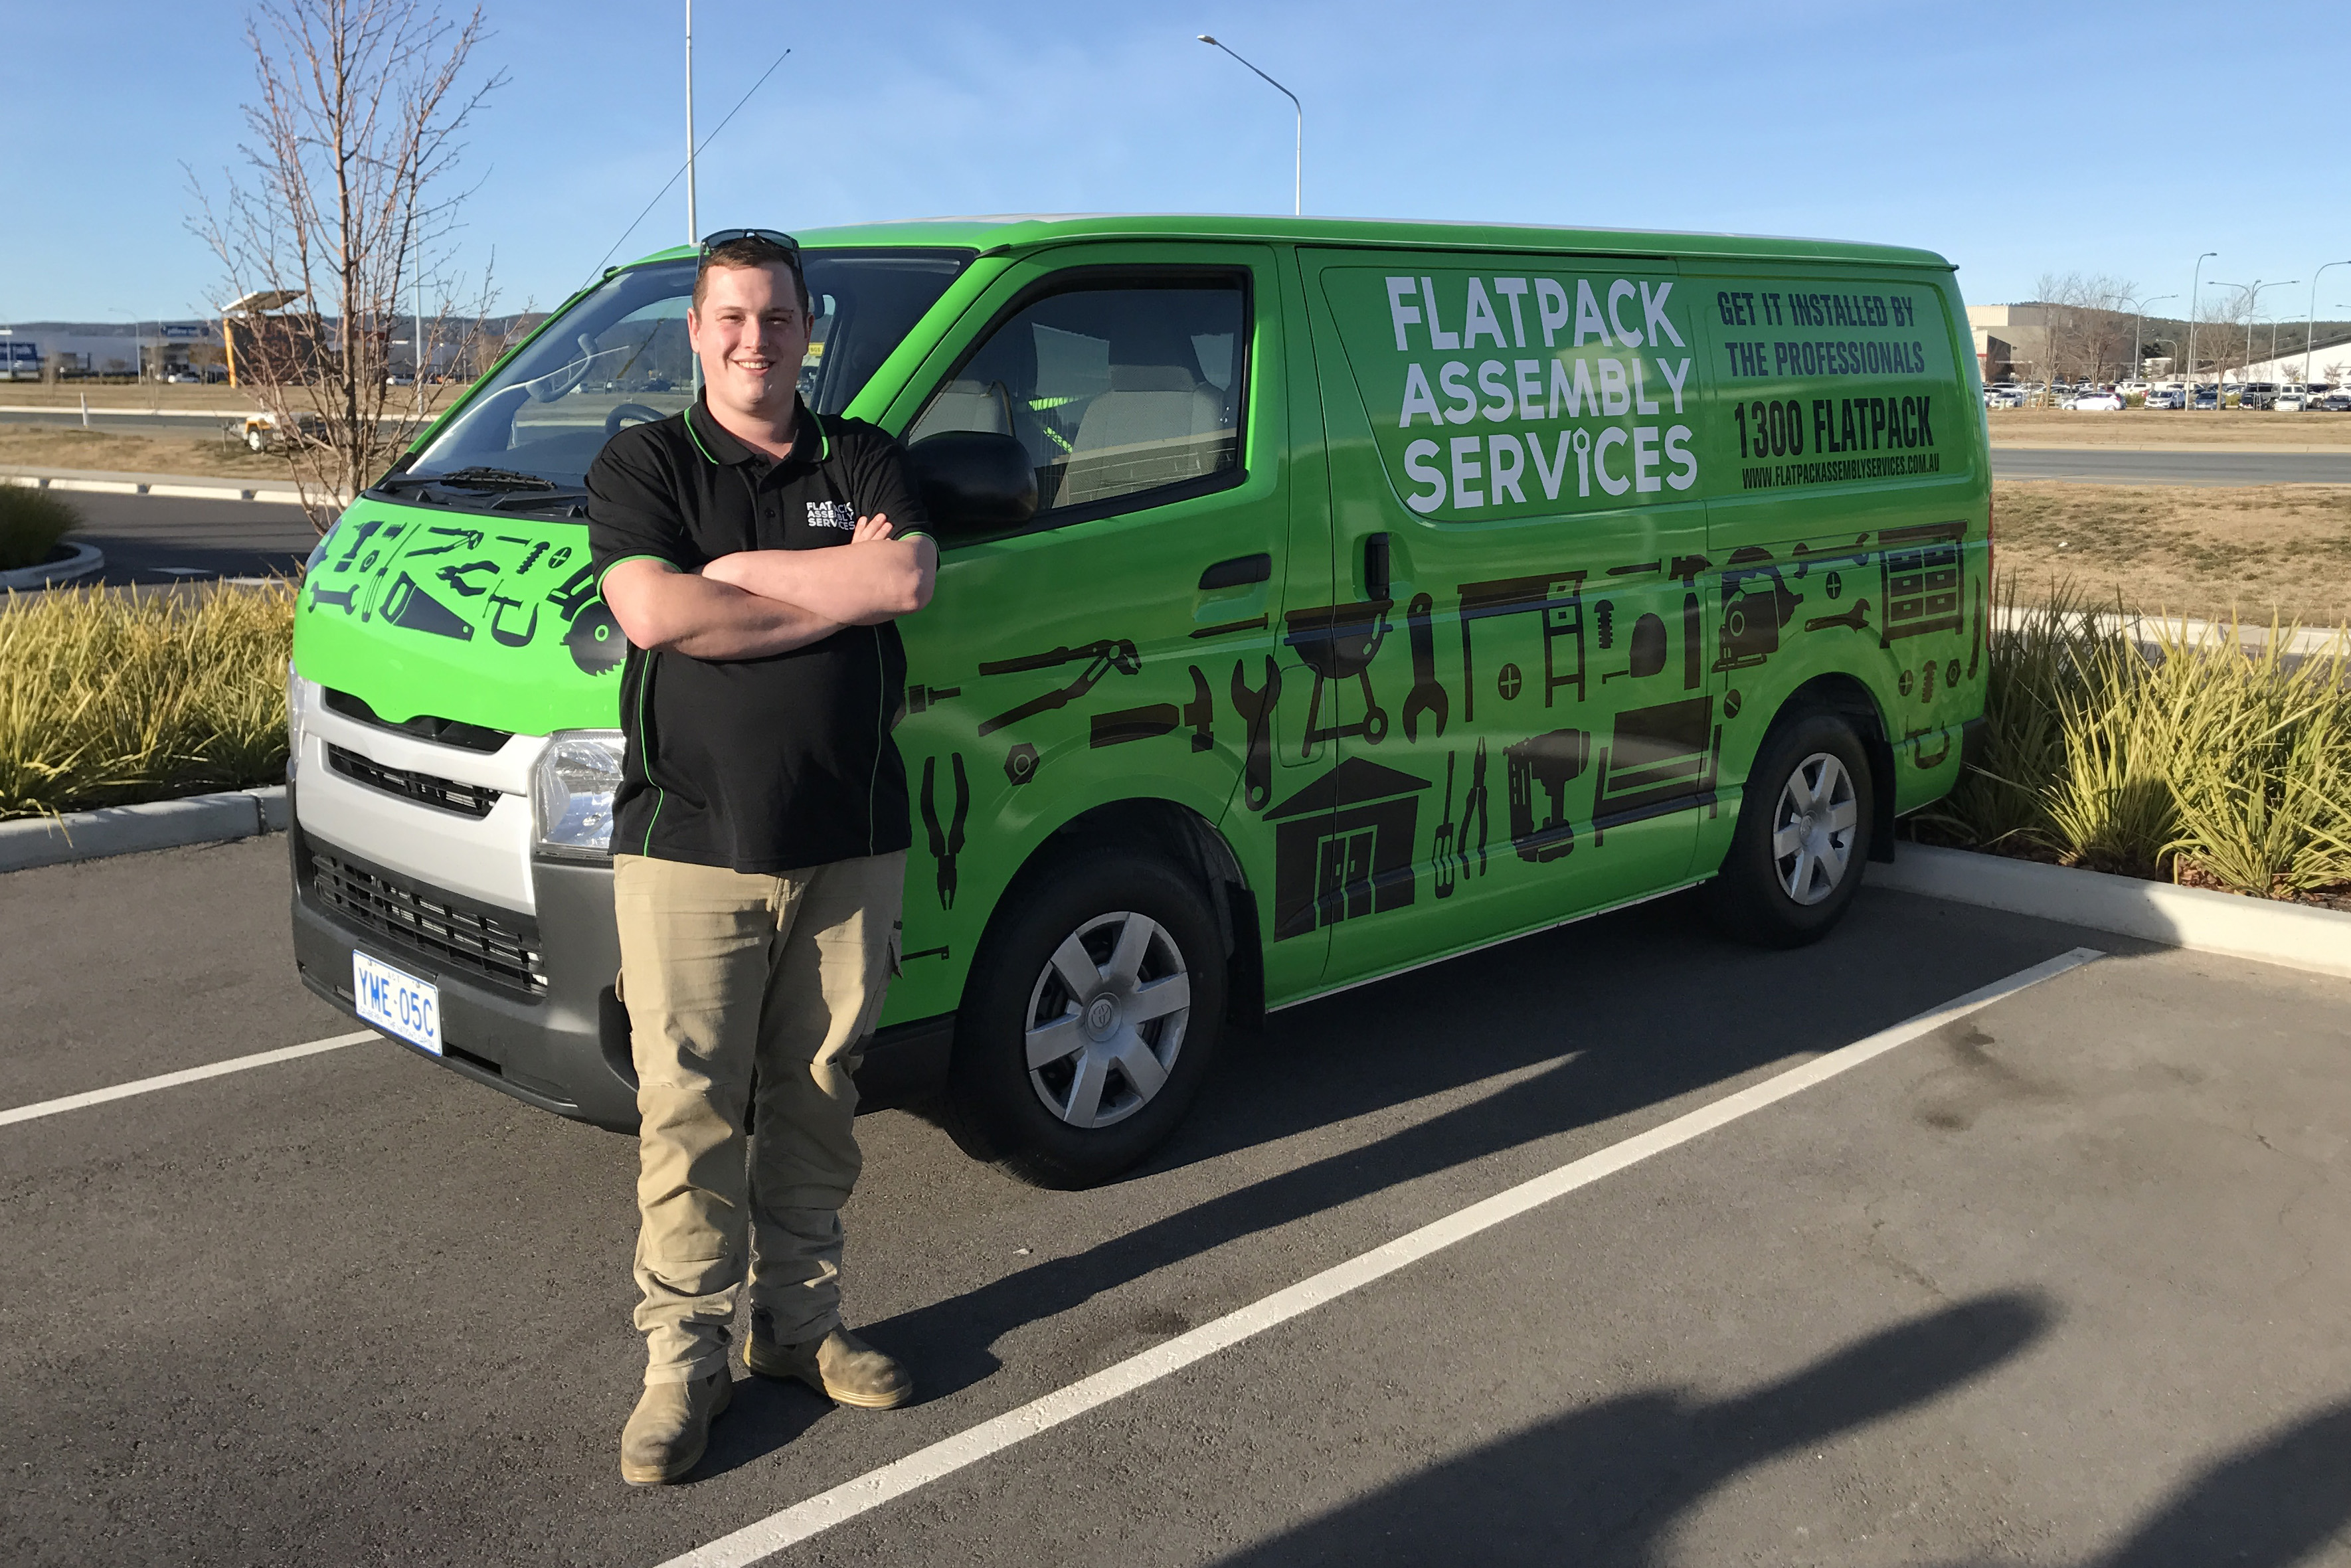 Flatpack Assembly Services Franchises avaliable - WOLLONGONG